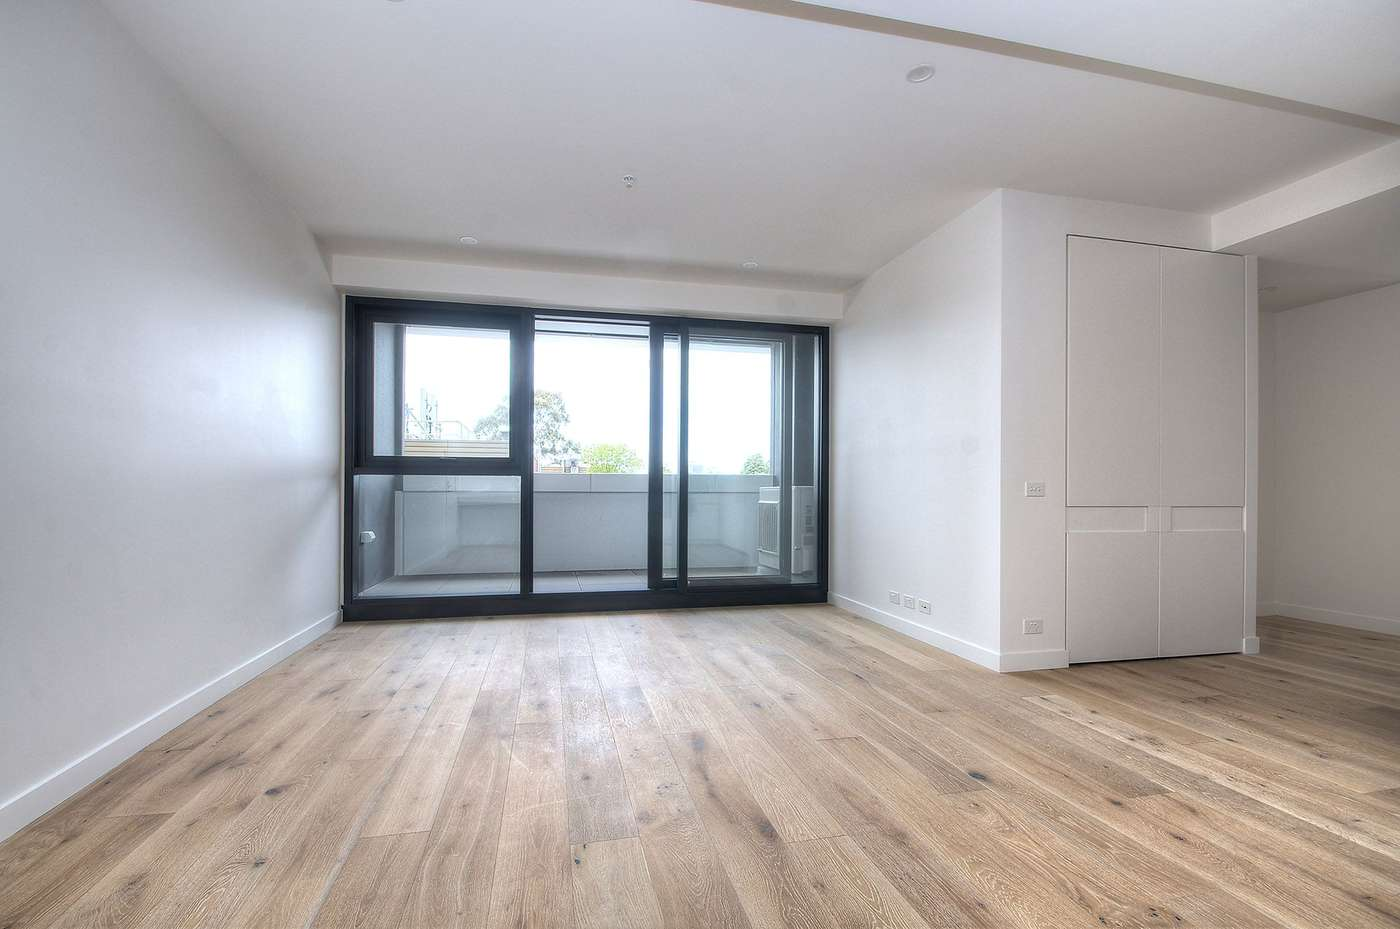 Main view of Homely apartment listing, 107/52 O'Sullivan Road, Glen Waverley, VIC 3150